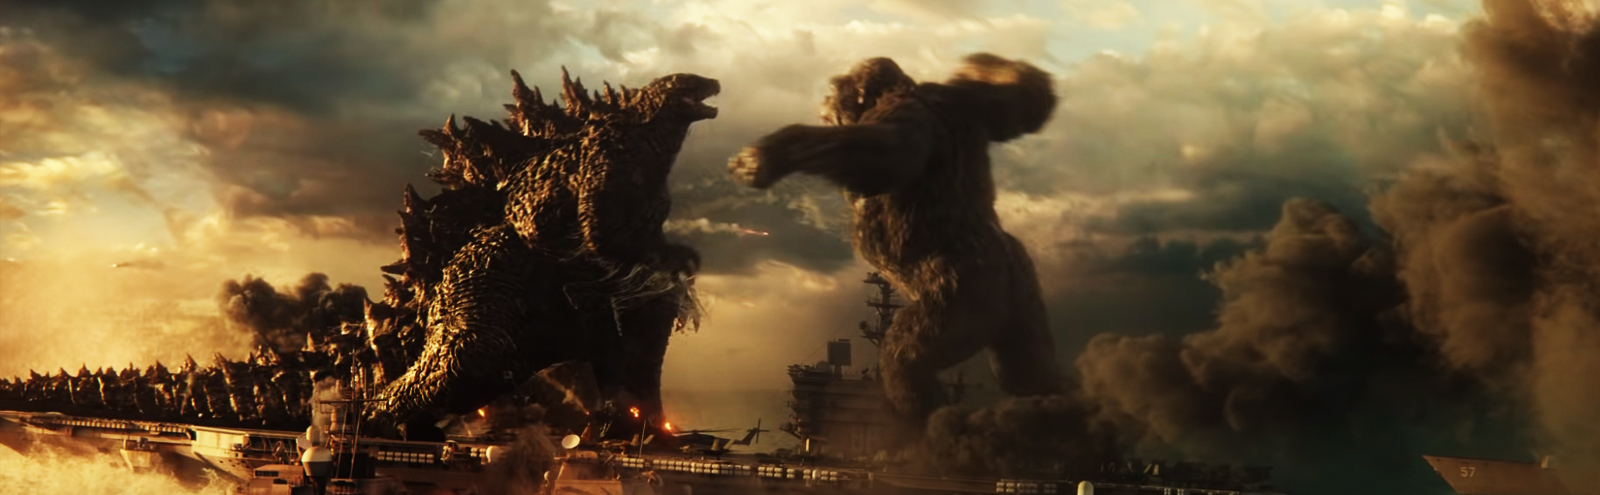 An Important 'Godzilla Vs. Kong' Update: Godzilla Punches Kong, Too